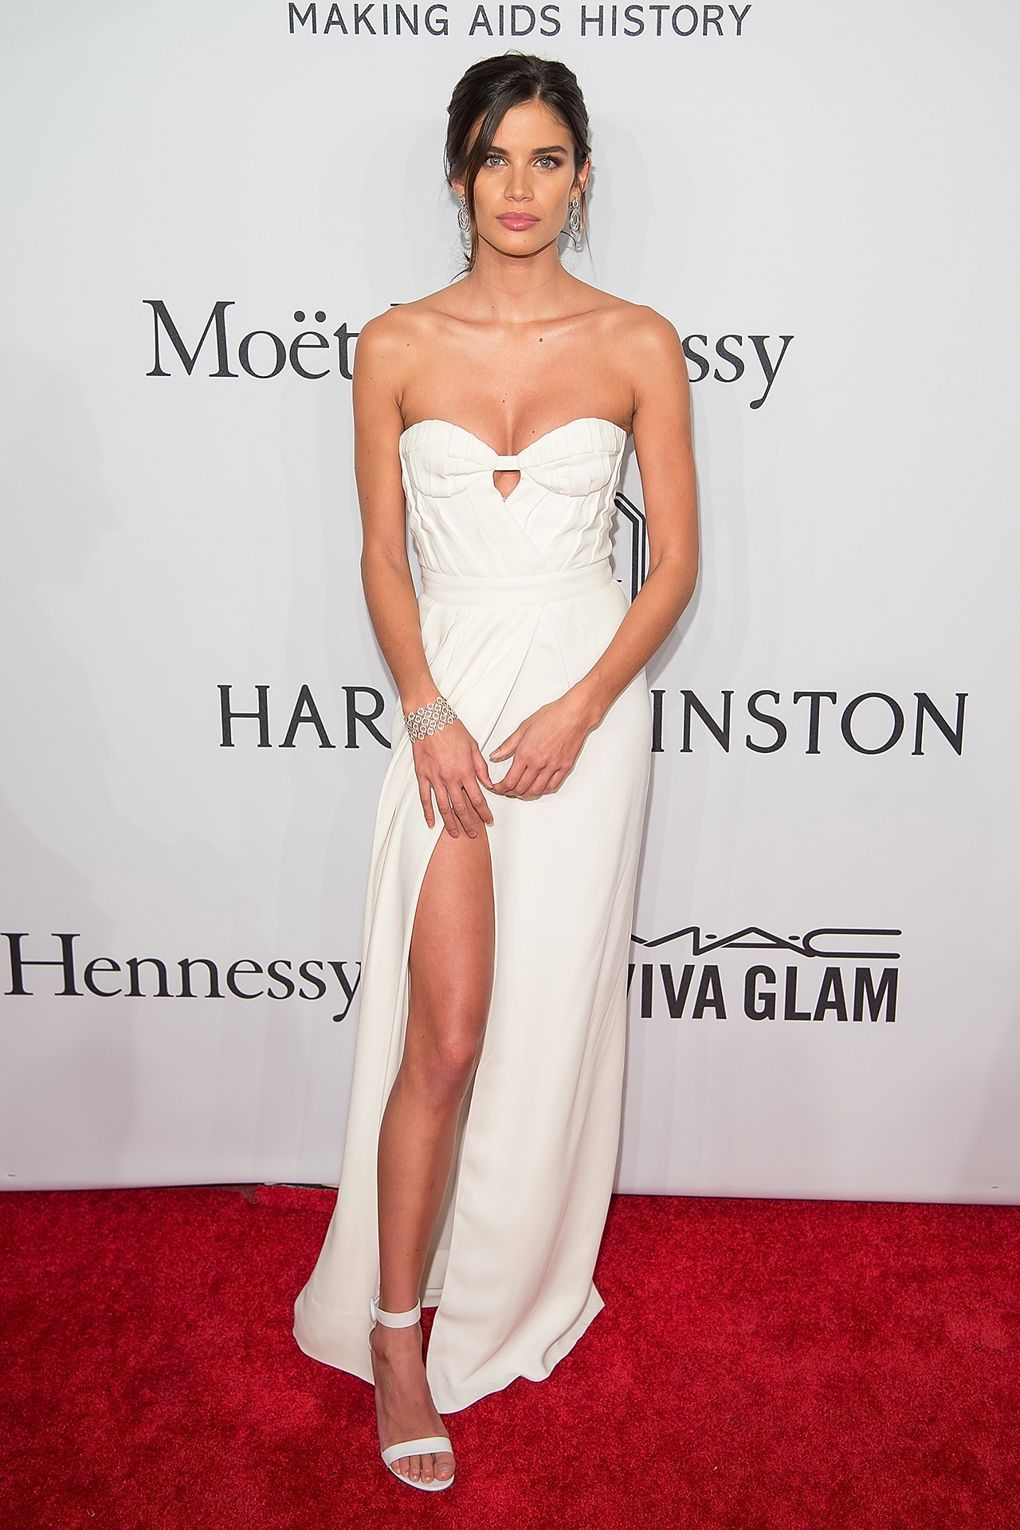 Sara wore white corseted Burberry for the amfAR New York gala.